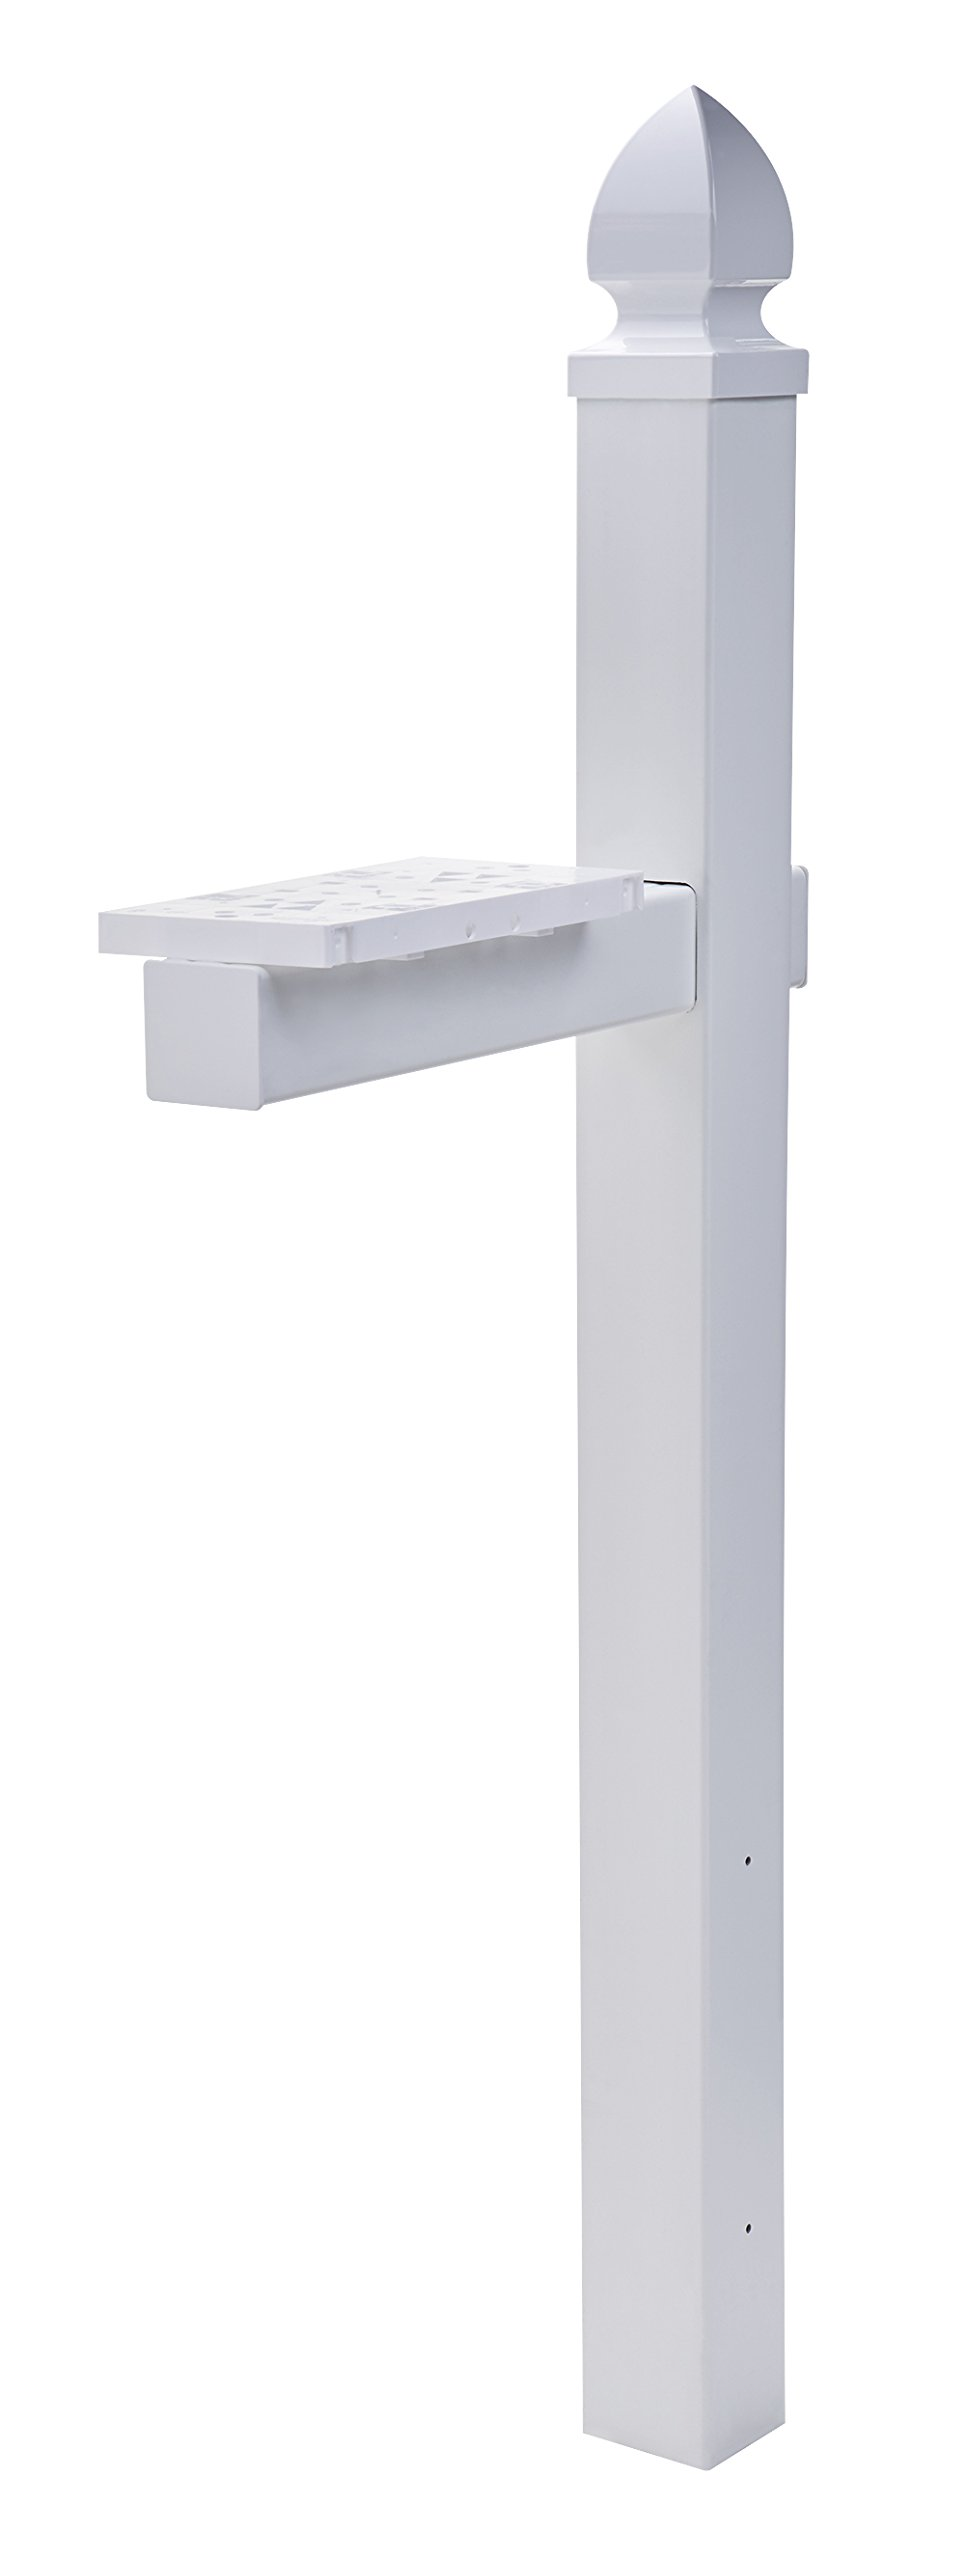 Gibraltar Mailboxes Whitley 4x4 Rust-Proof Plastic White,  Cross-Arm Mailbox Post, WP000W01 by Gibraltar Mailboxes